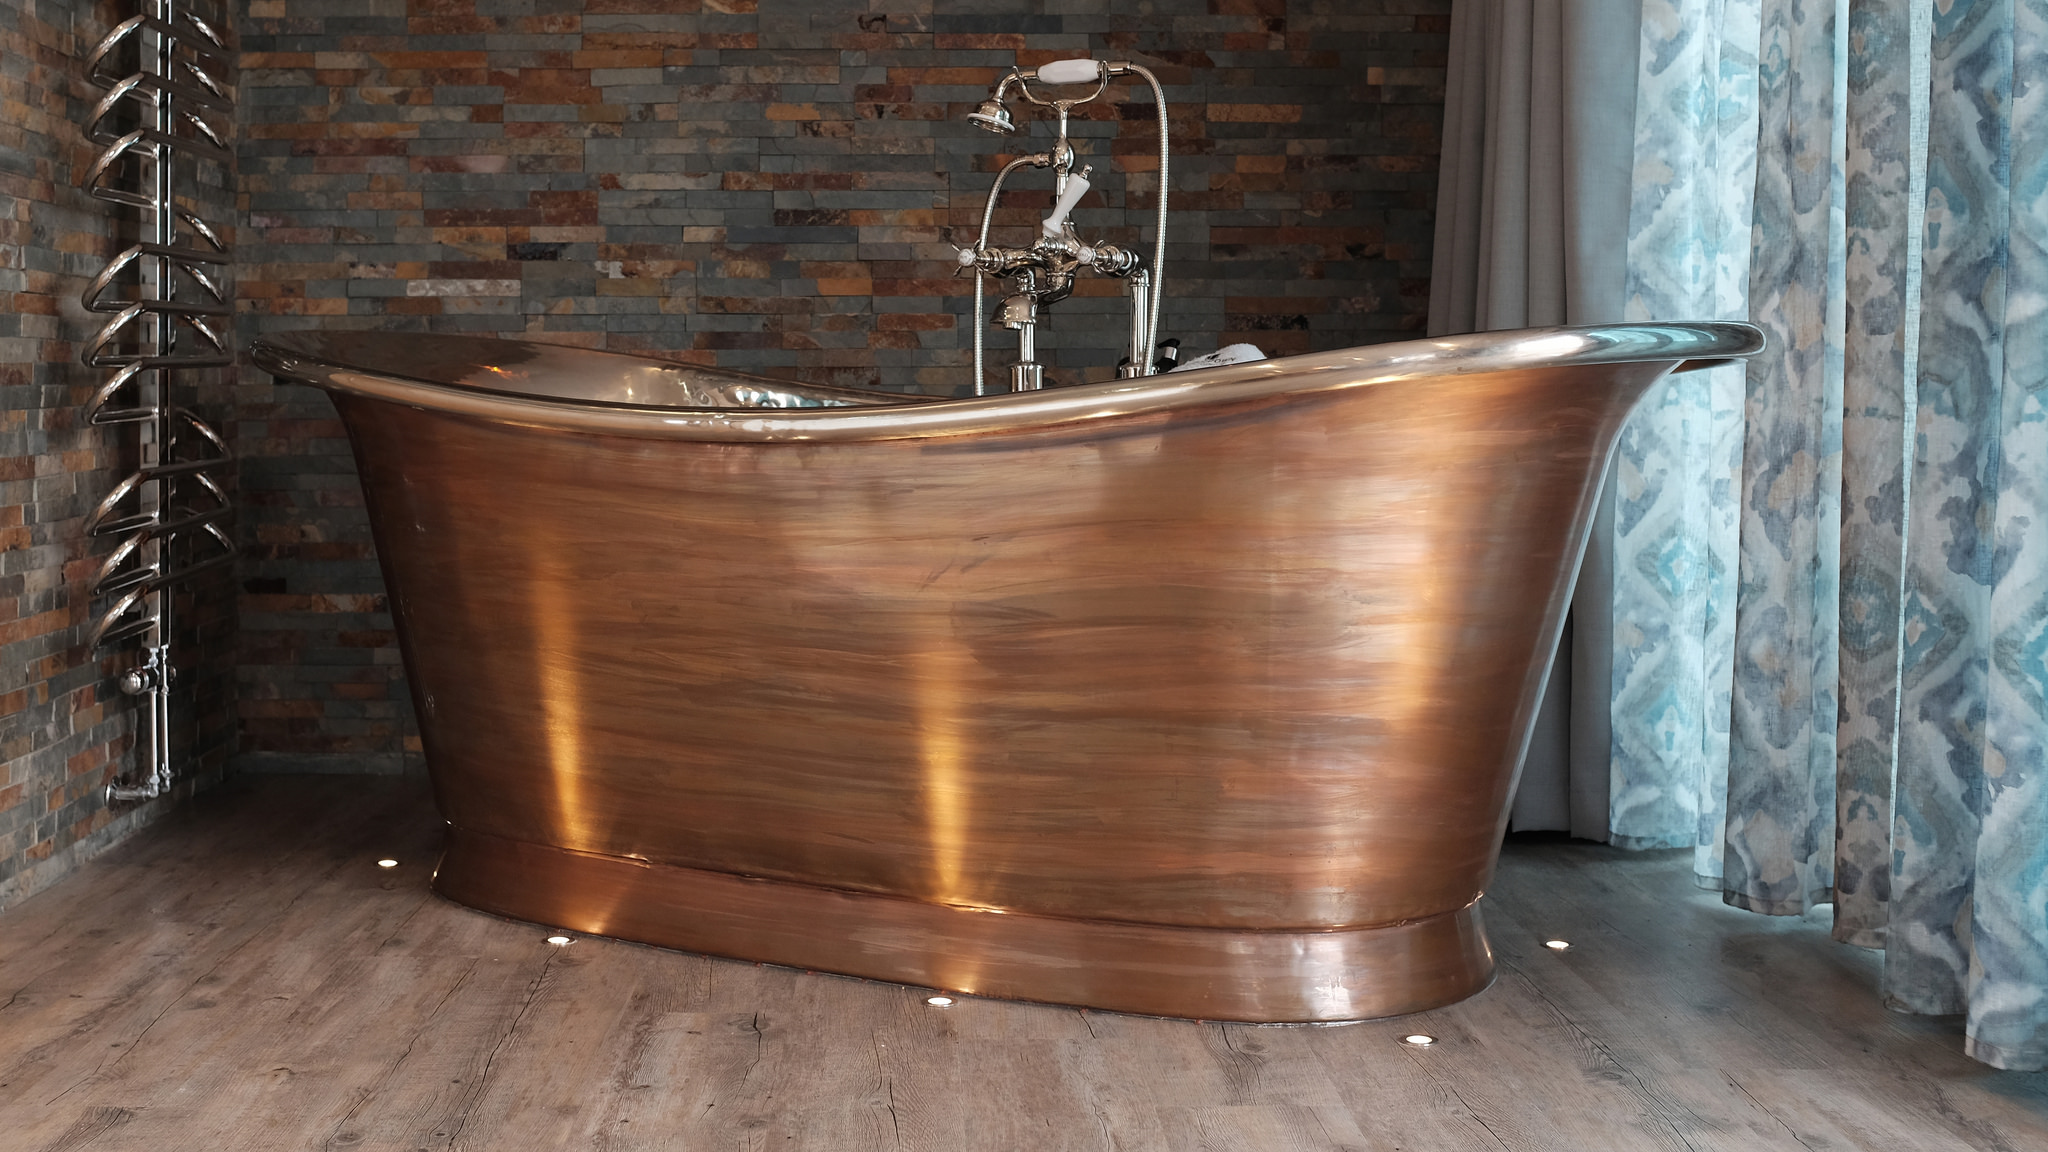 Brushed copper spa bath for two